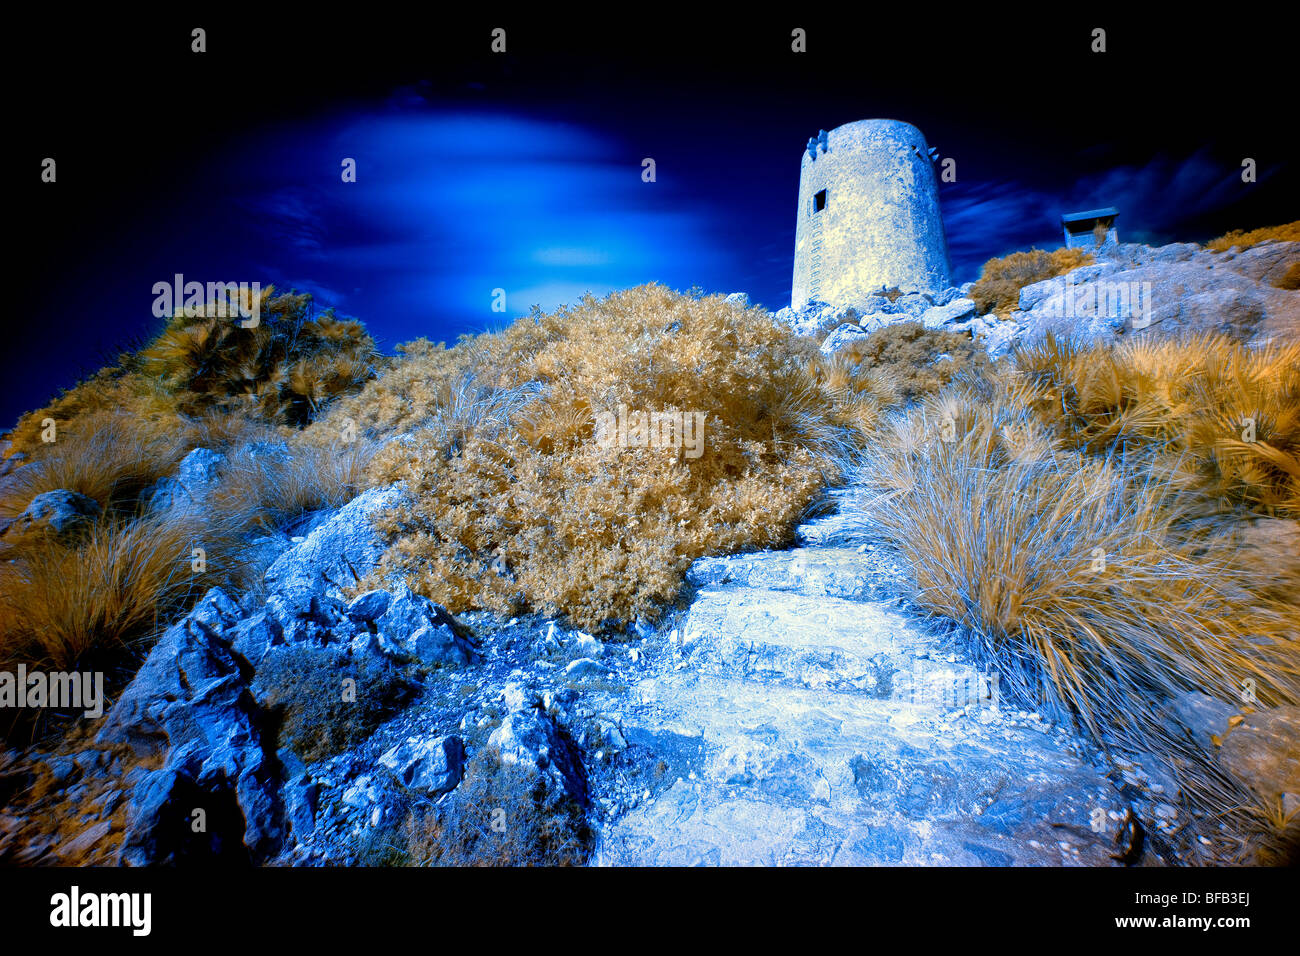 Pirate watchtower, Cap Formentor, Mallorca, infra-red. - Stock Image